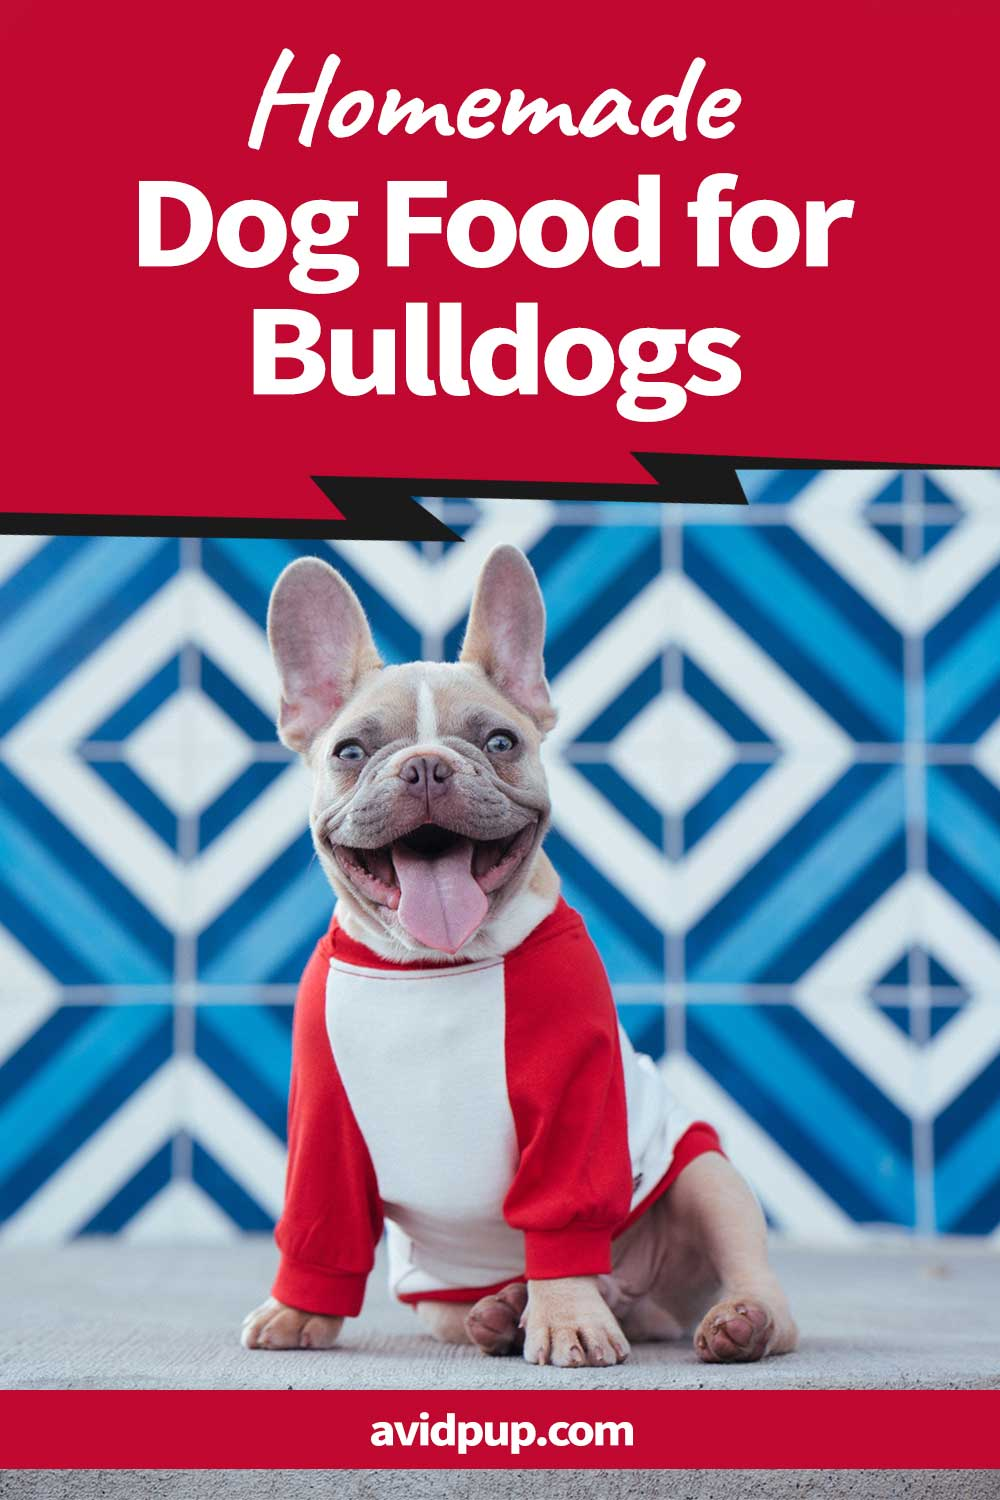 Homemade Dog Food for Bulldogs: What Do They Eat and What Should They Avoid?